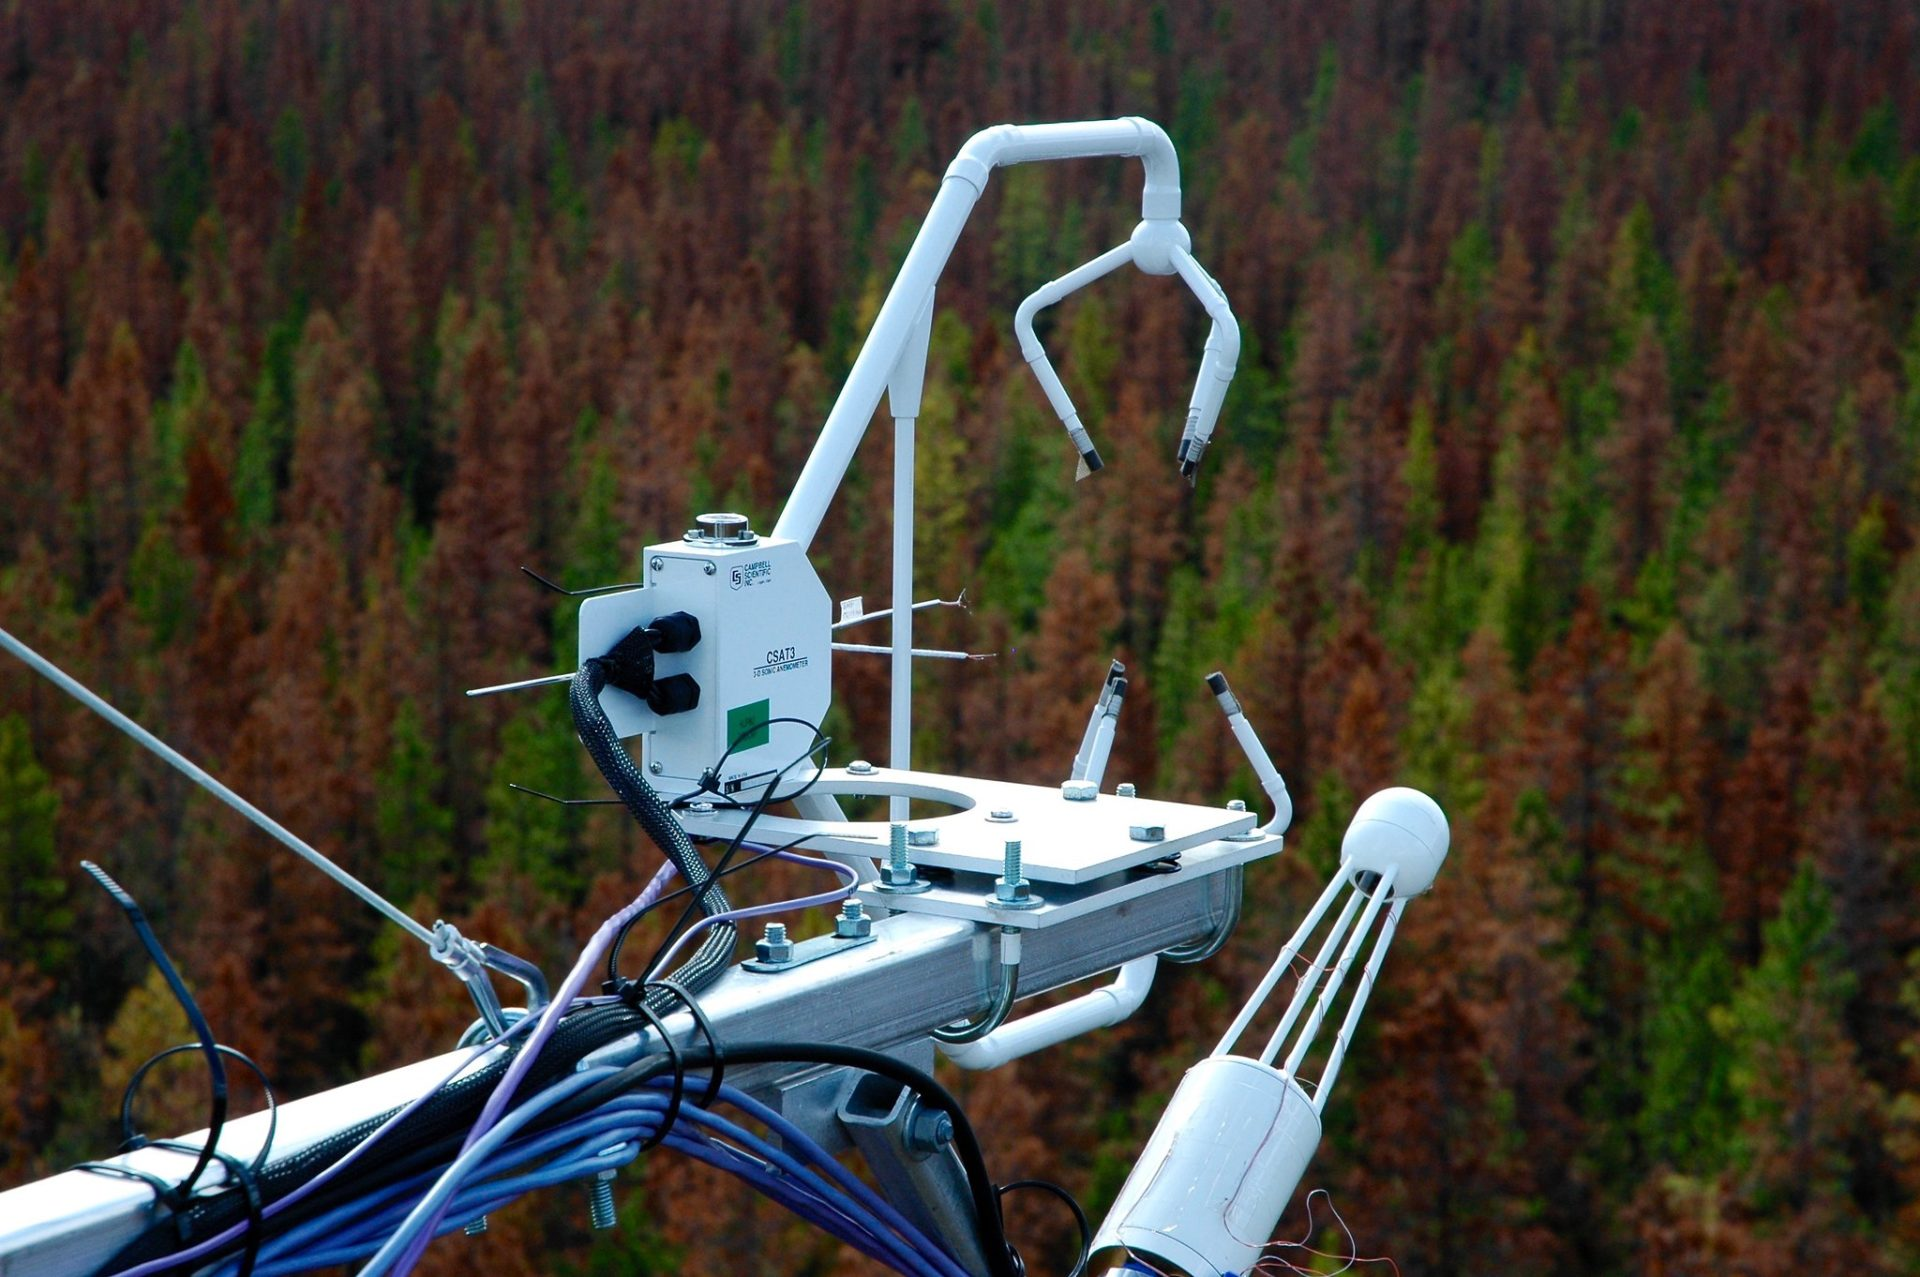 Equipment at a flux tower operated by UBC Micrometerology measures wind, heat and water 25 metres above a forest canopy attacked by the mountain pine beetle in Kennedy. B.C. The project is designed to better understand how pine beetle forests influence greenhouse gases emissions. Photo: Andreas Christen /  UBC Micrometerology Flickr